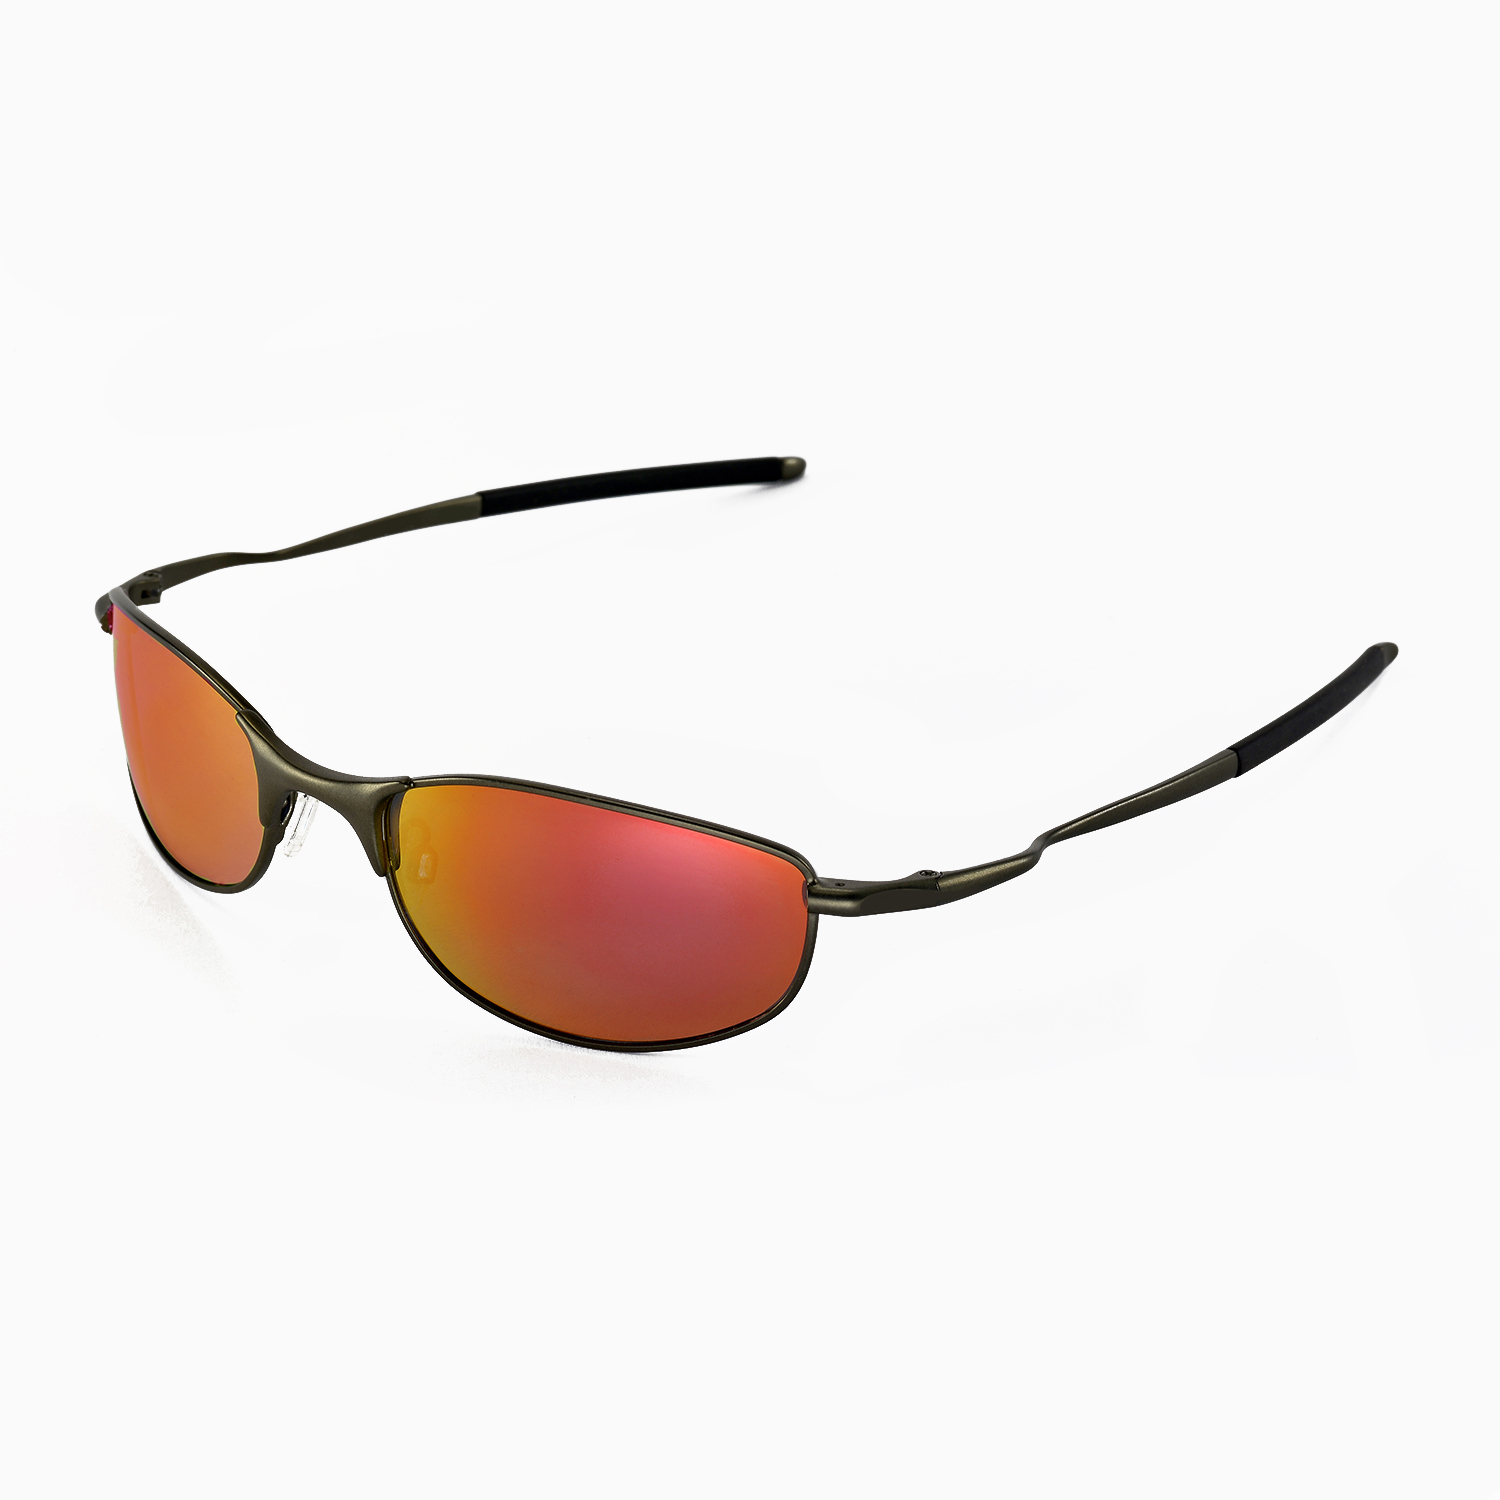 34bd976234 Oakley Mens Tightrope Polarized Sunglasses « Heritage Malta